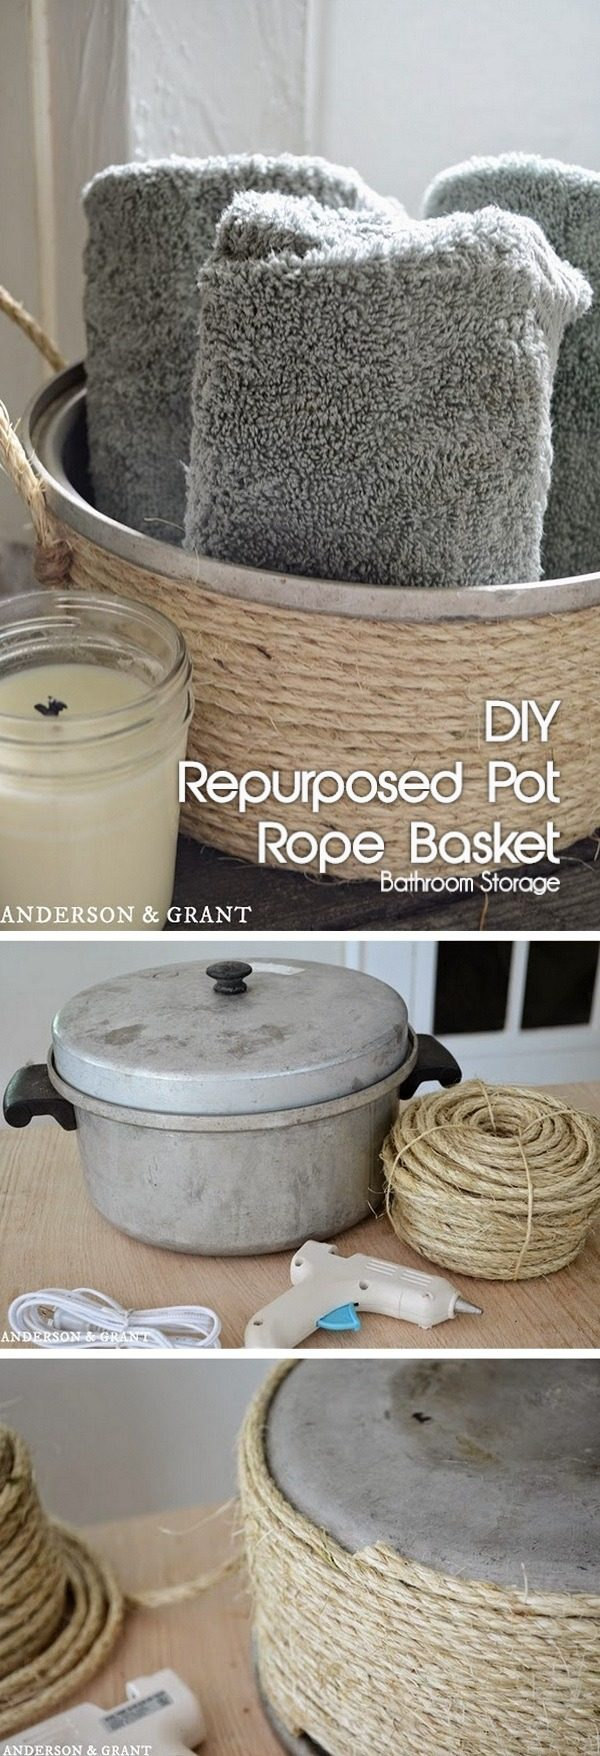 Check out how to turn an old pot into a #DIY bathroom storage rope basket #RusticDecor #BathroomDecor #HomeDecorIdeas